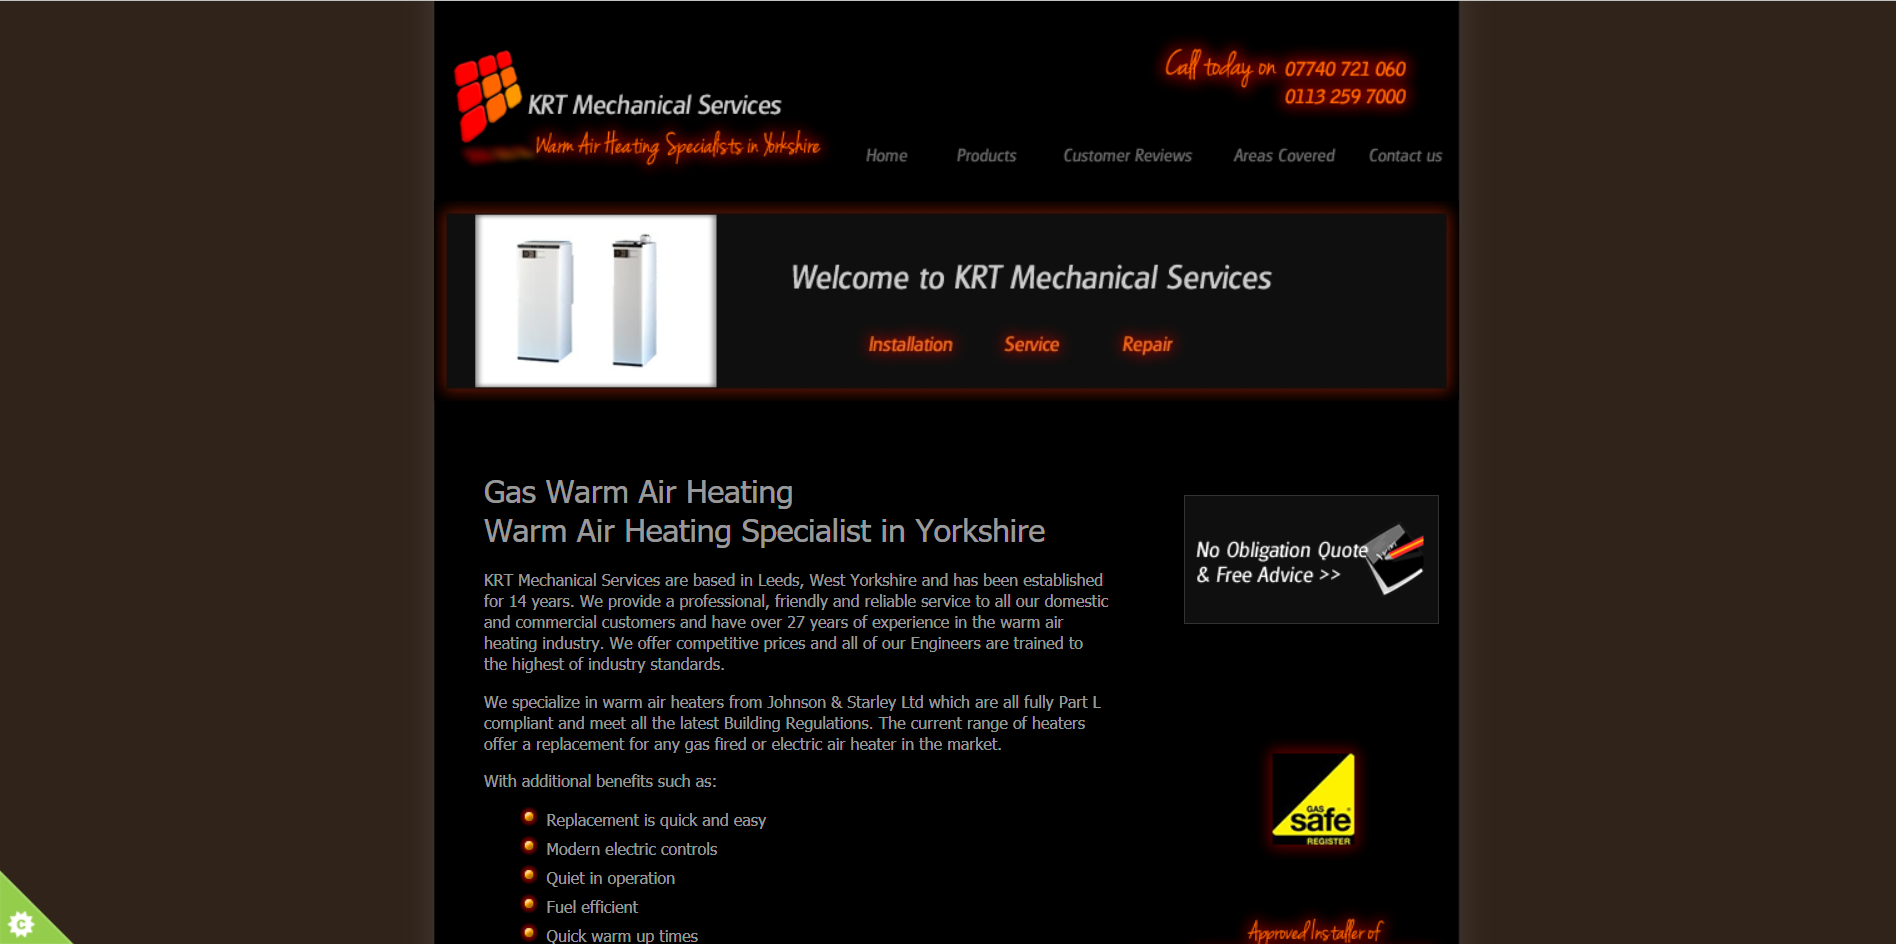 Sample of the design work on the KRT Mechanical Services website